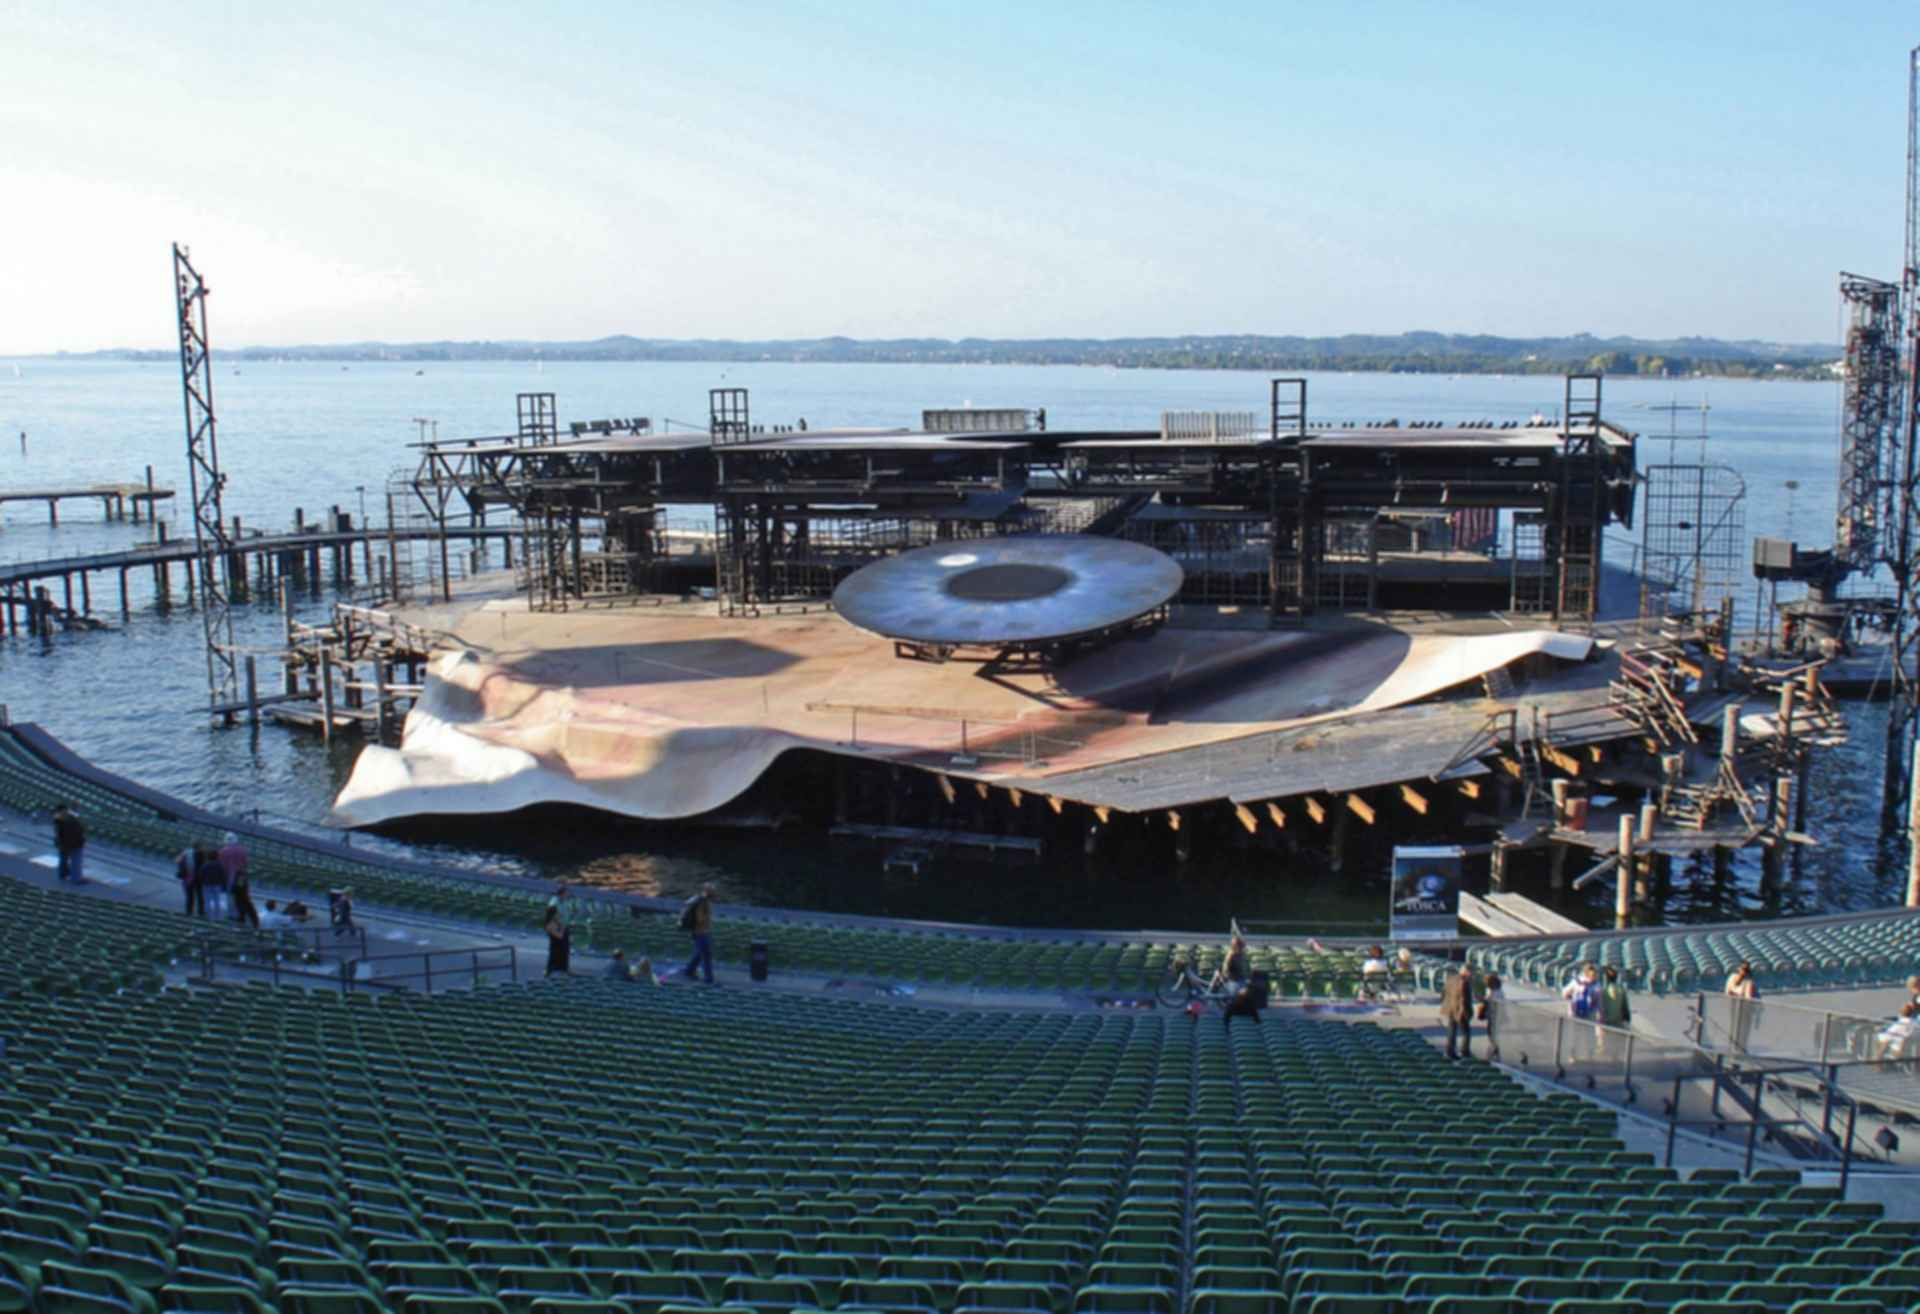 Seeb_hne at Festspielhaus Bregenz - Seating/Construction of Stage